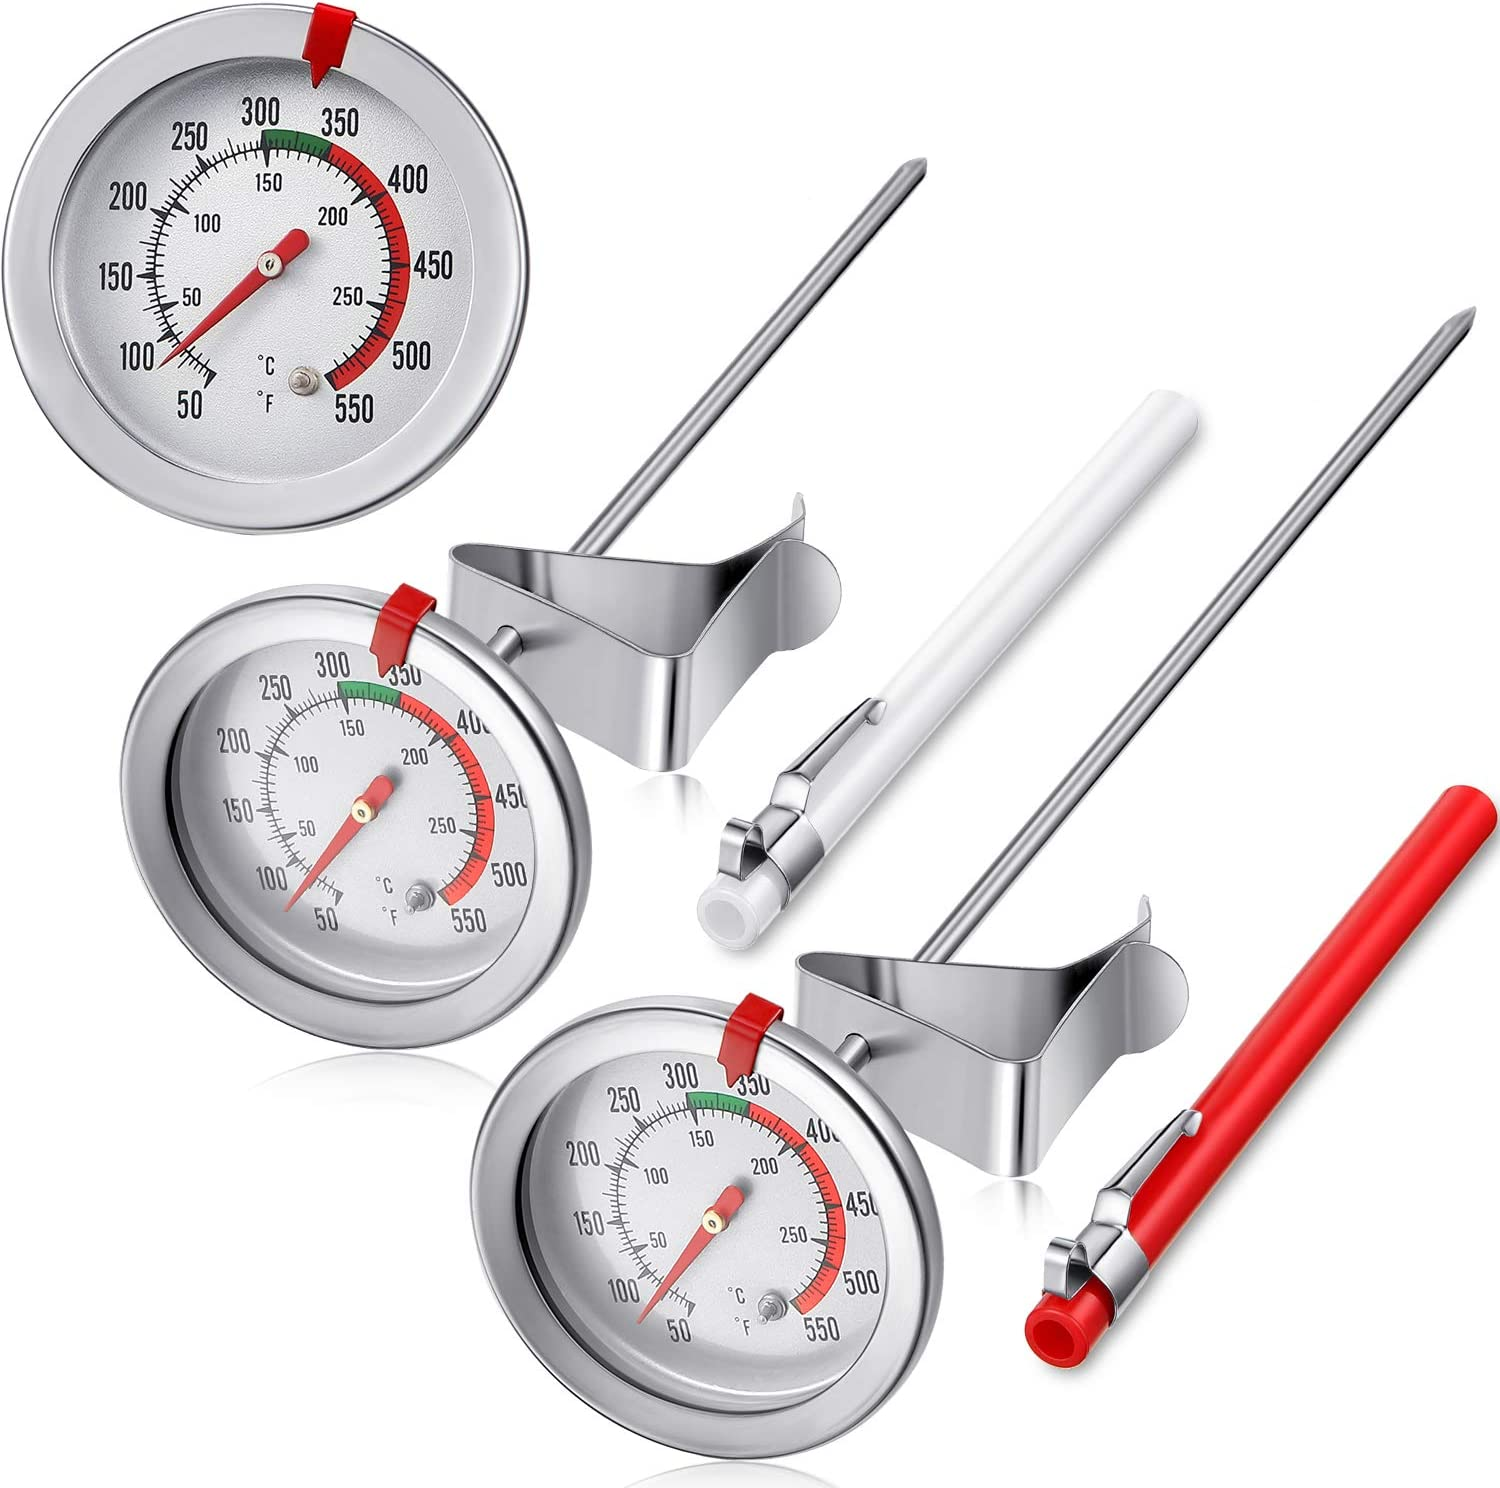 2 Pieces Stainless Steel Thermometer Instant Read 2 Inch Dial Thermometer 7 8 Or 11 8 Inch Long Stem Fry Thermometer With Metal Retaining Clip And 2 Pieces Plastic Sleeves 7 8 And 11 8 Inch Kitchen Dining